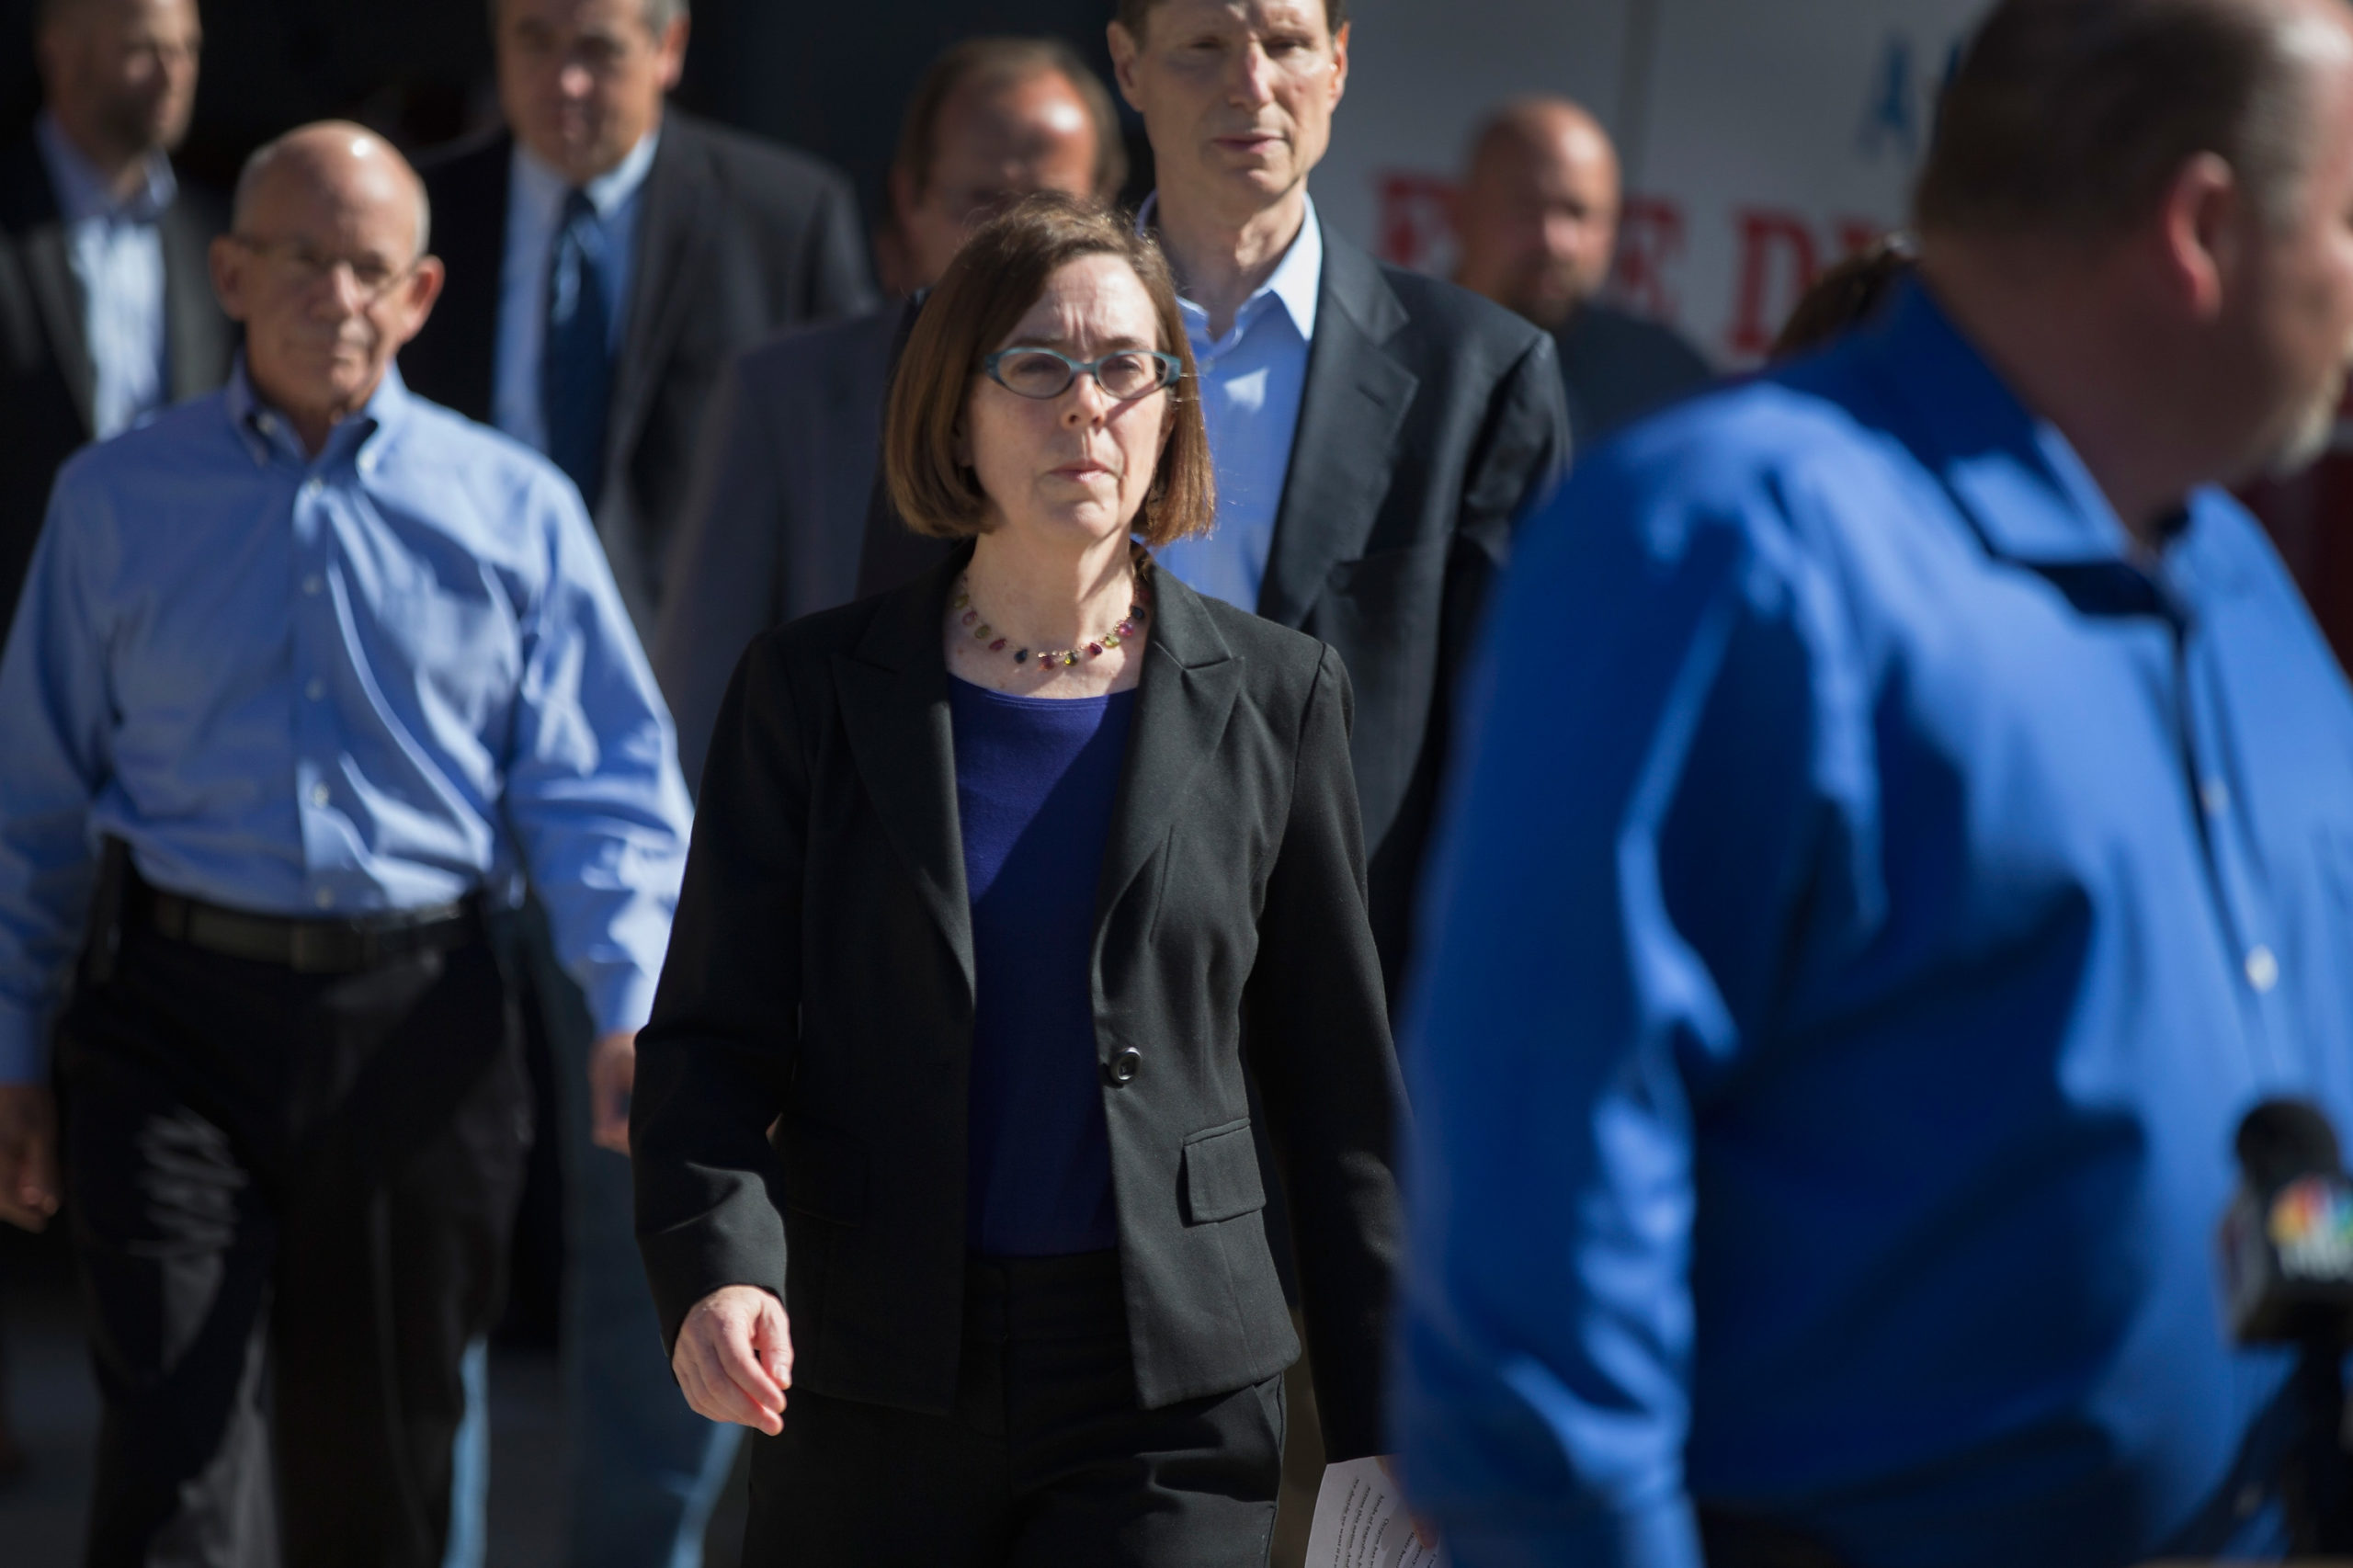 ROSEBURG, OR - OCTOBER 02: Oregon governor Kate Brown (C) arrives for a press conference where she addressed the mass shooting at Umpqua Community College on October 2, 2015 in Roseburg, Oregon. Yesterday 26-year-old Chris Harper Mercer went on a shooting rampage at the campus, killing 9 people and wounding another seven before he was killed. (Scott Olson/Getty Images)